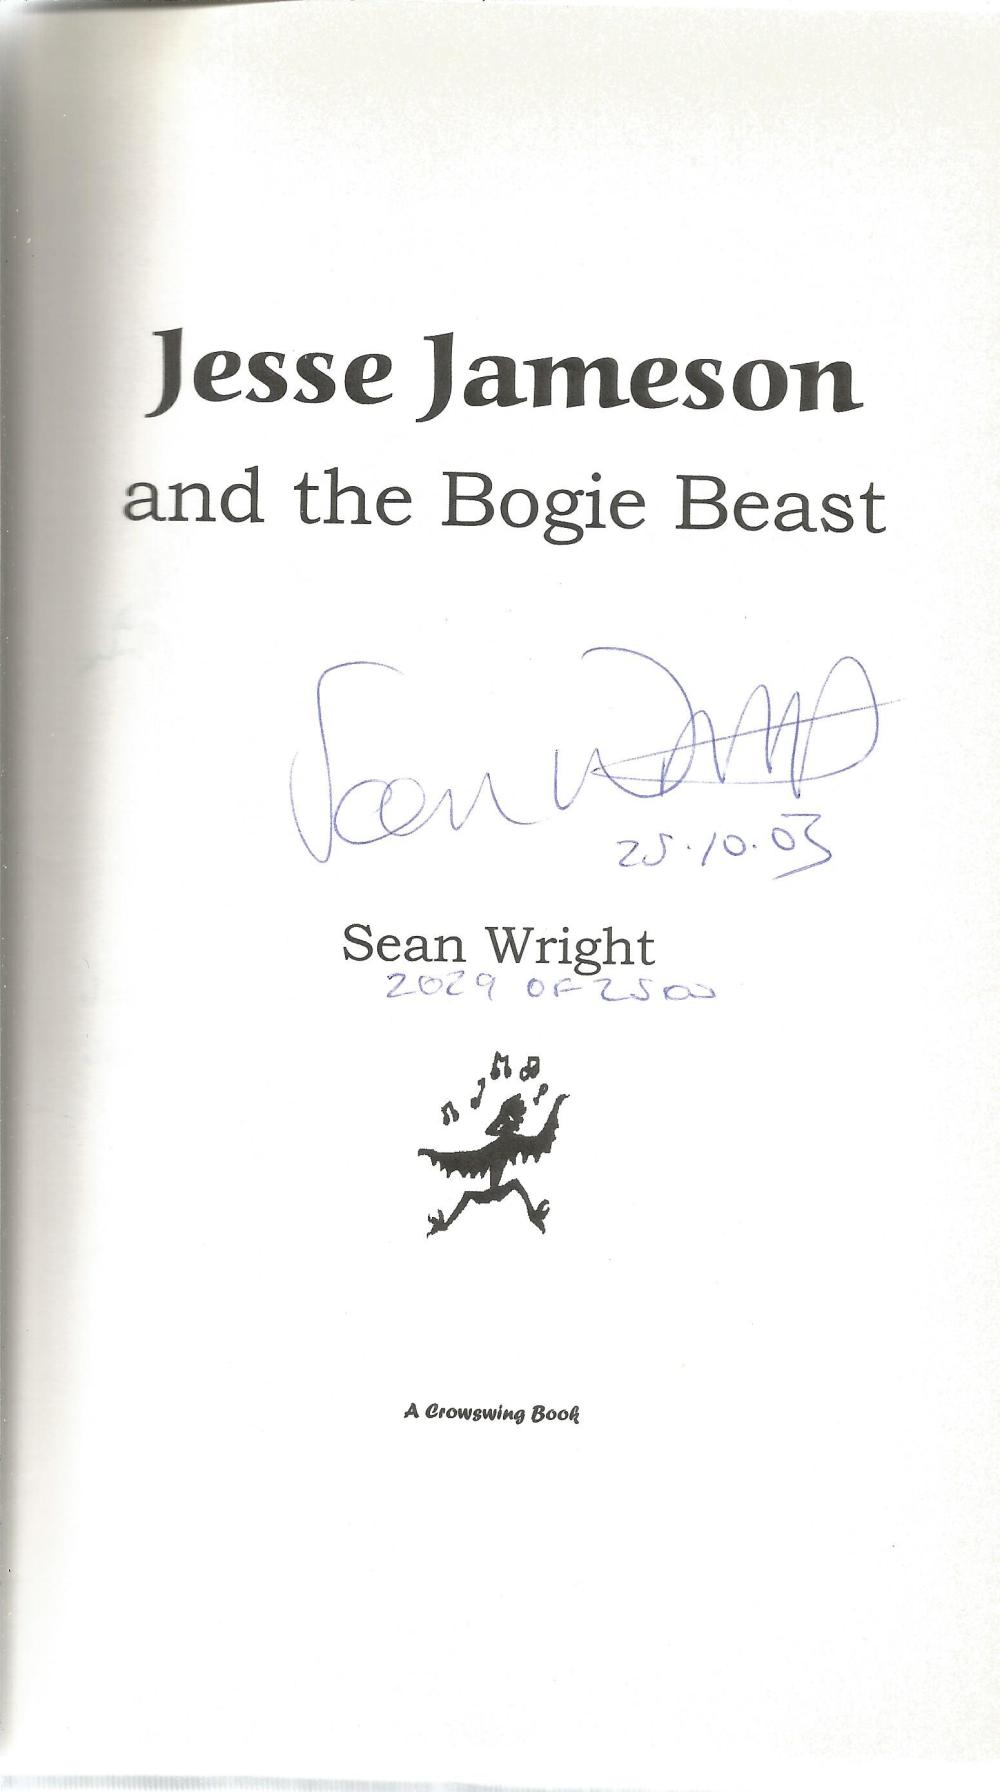 Jesse Jameson and the Bogie Beast by Sean Wright. Signed by the Author special limited edition - Image 2 of 3